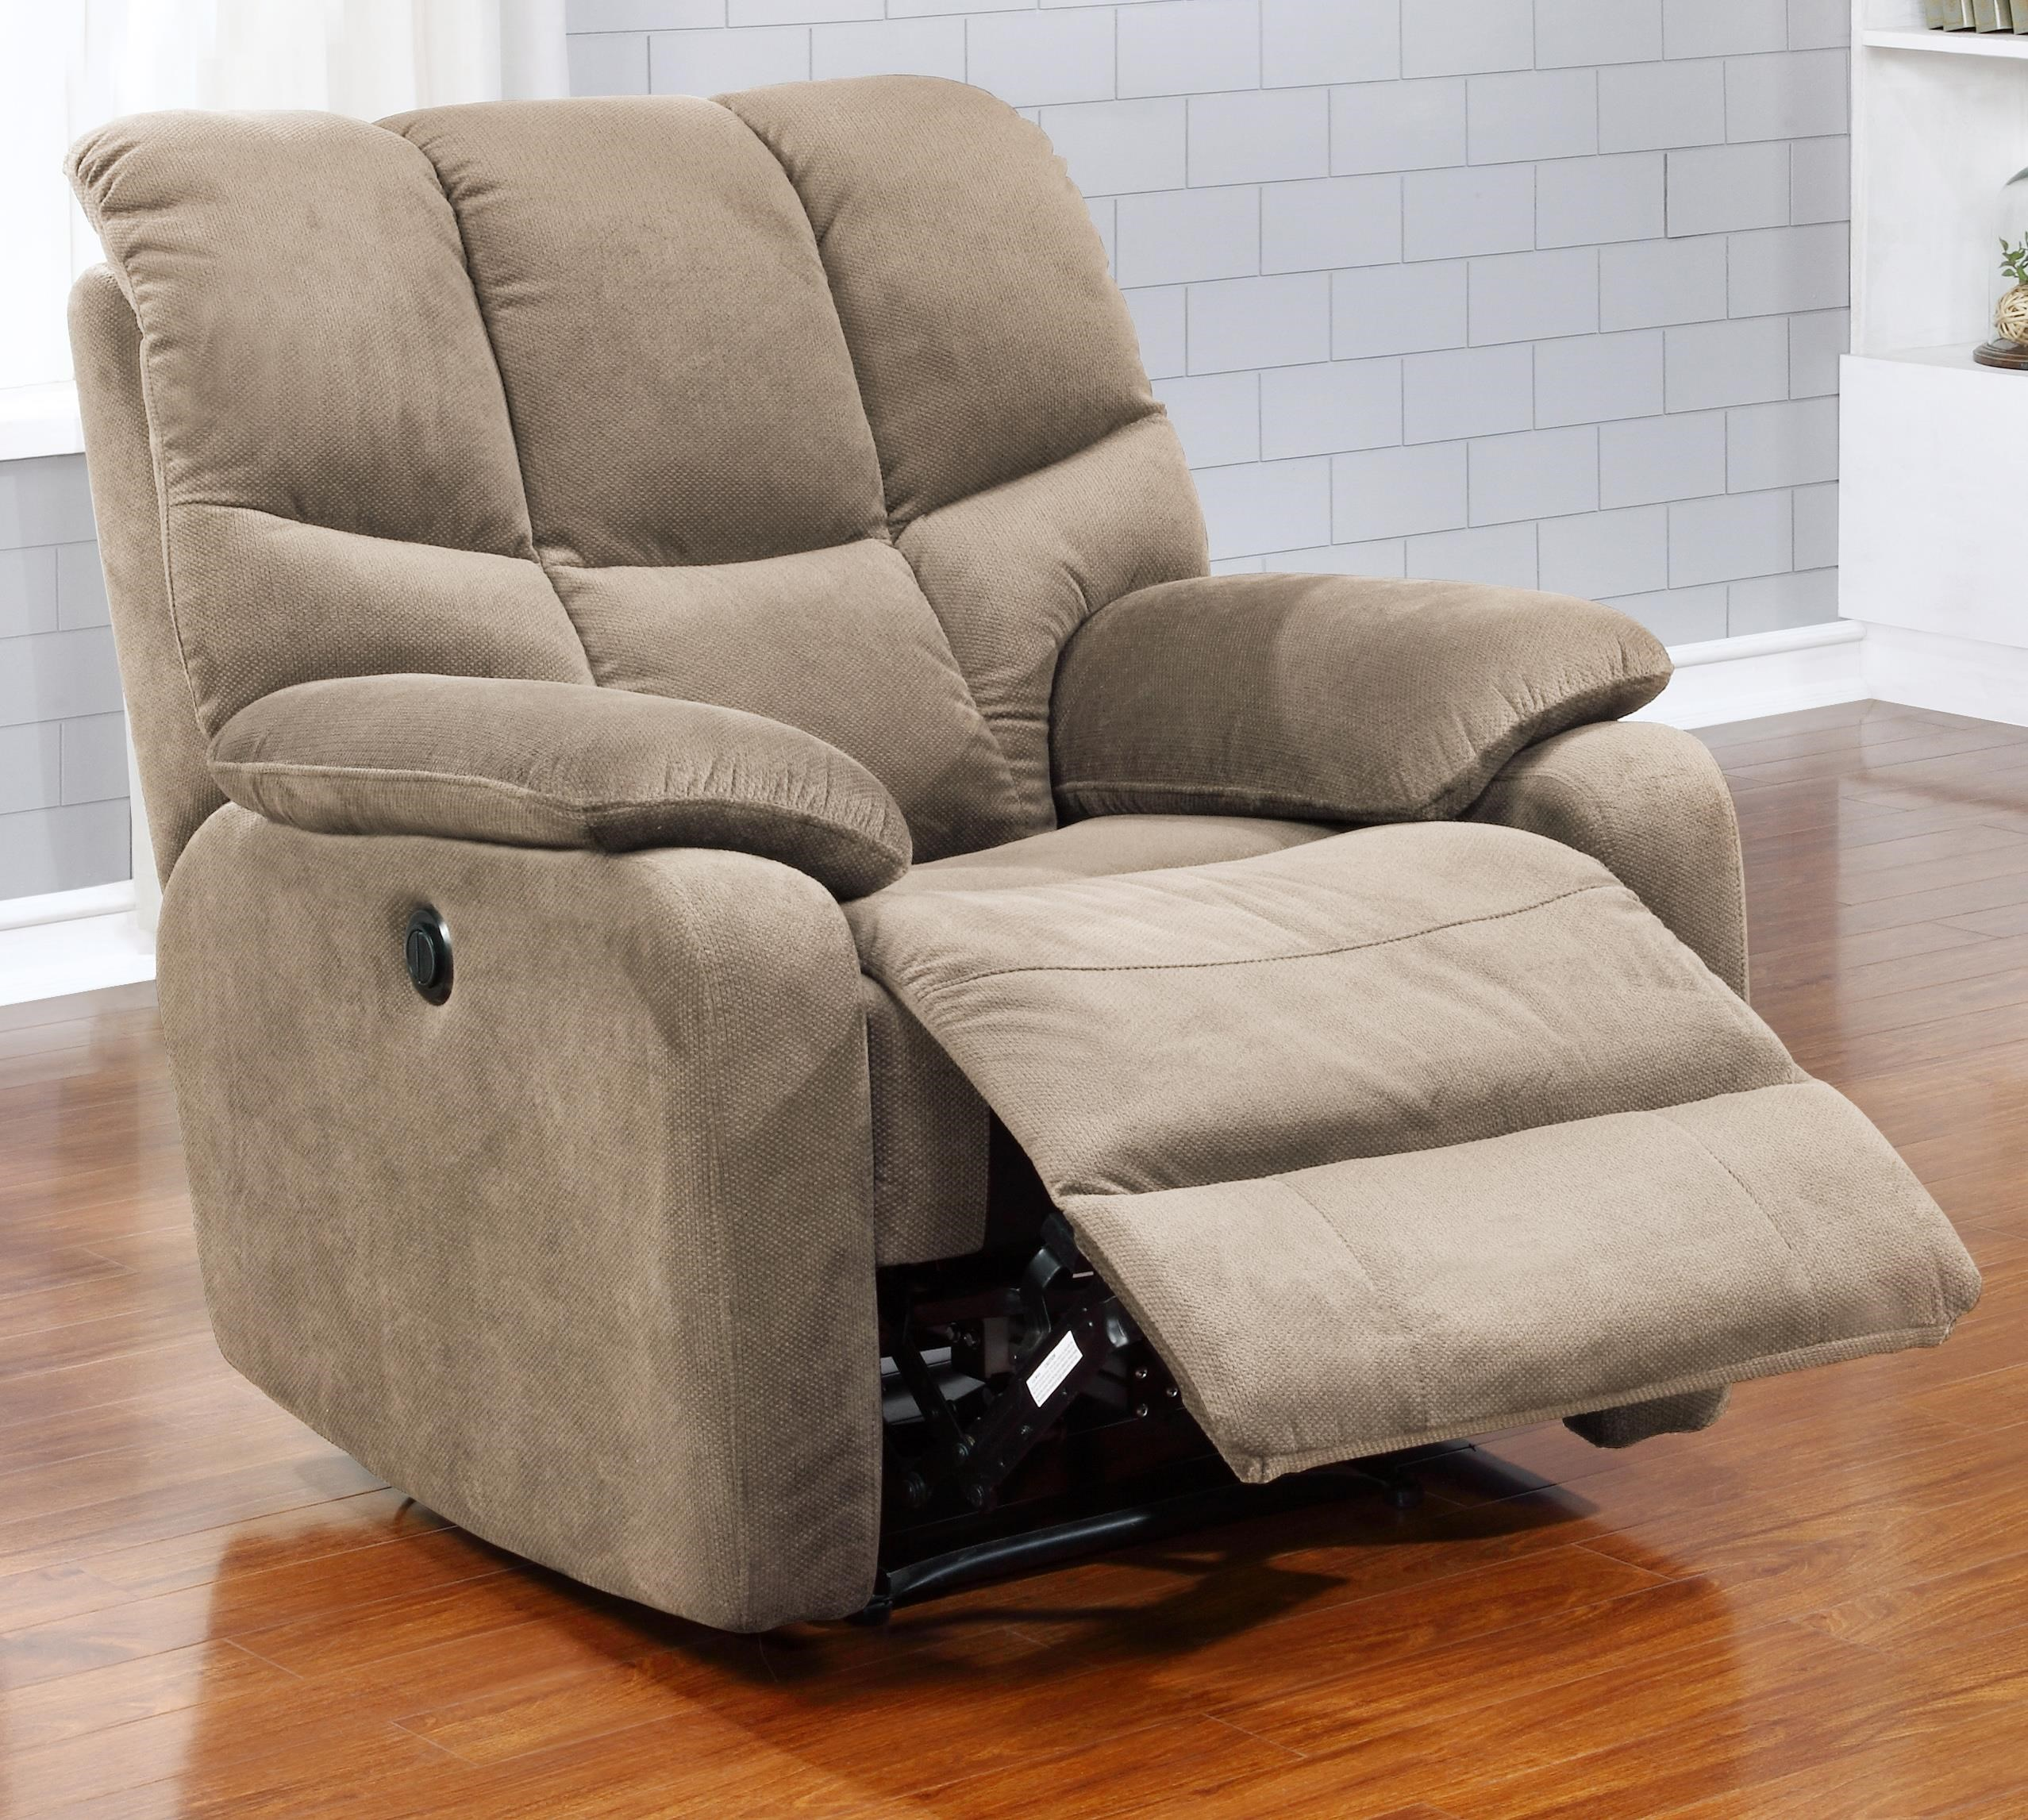 Jerry Power Recliner by Amalfi Home Furniture at Baer's Furniture